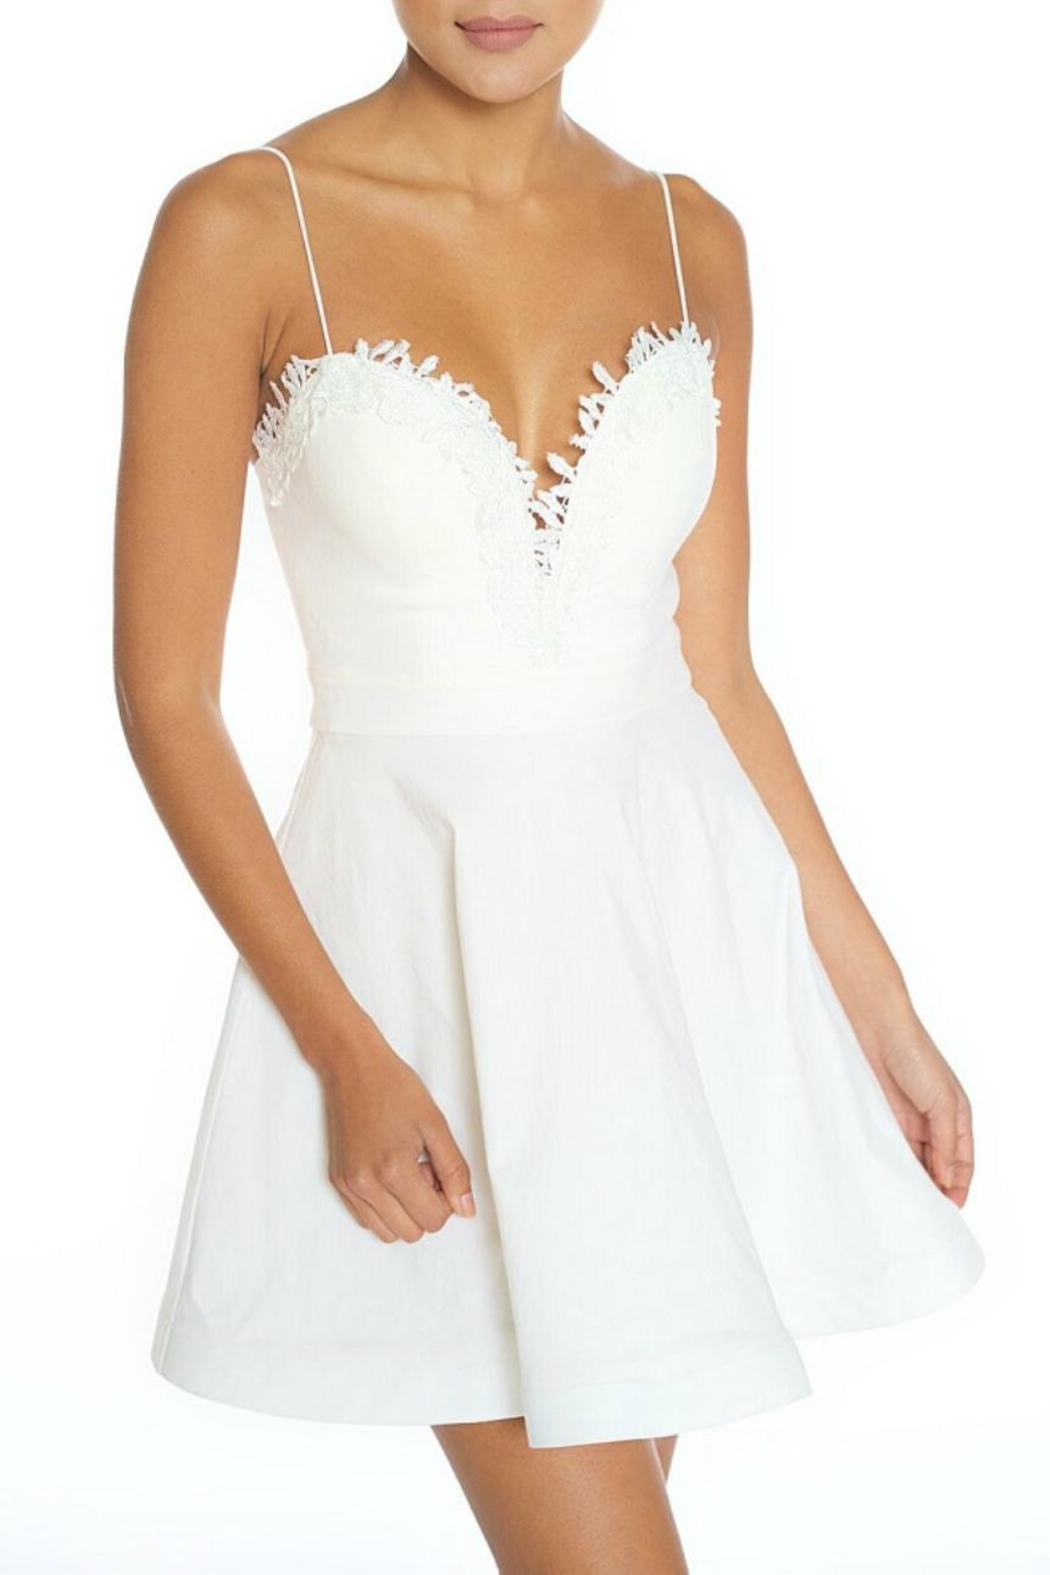 luxxel Sweetheart White Dress - Main Image